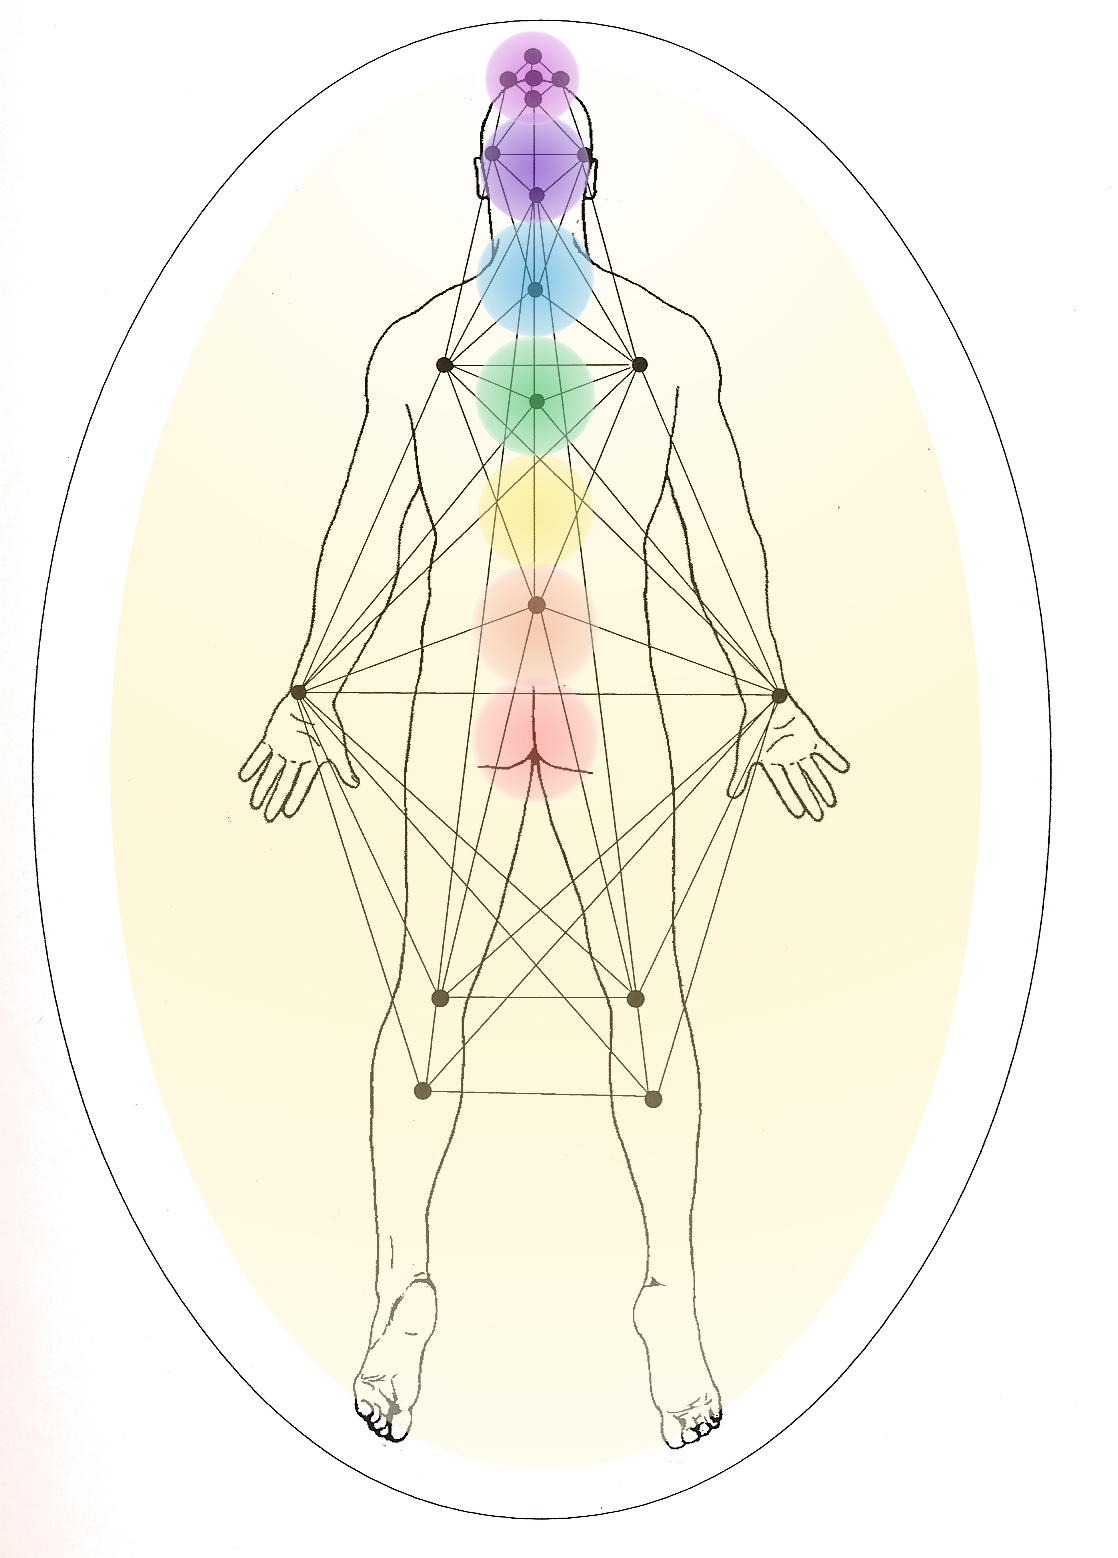 Energy flow in the body